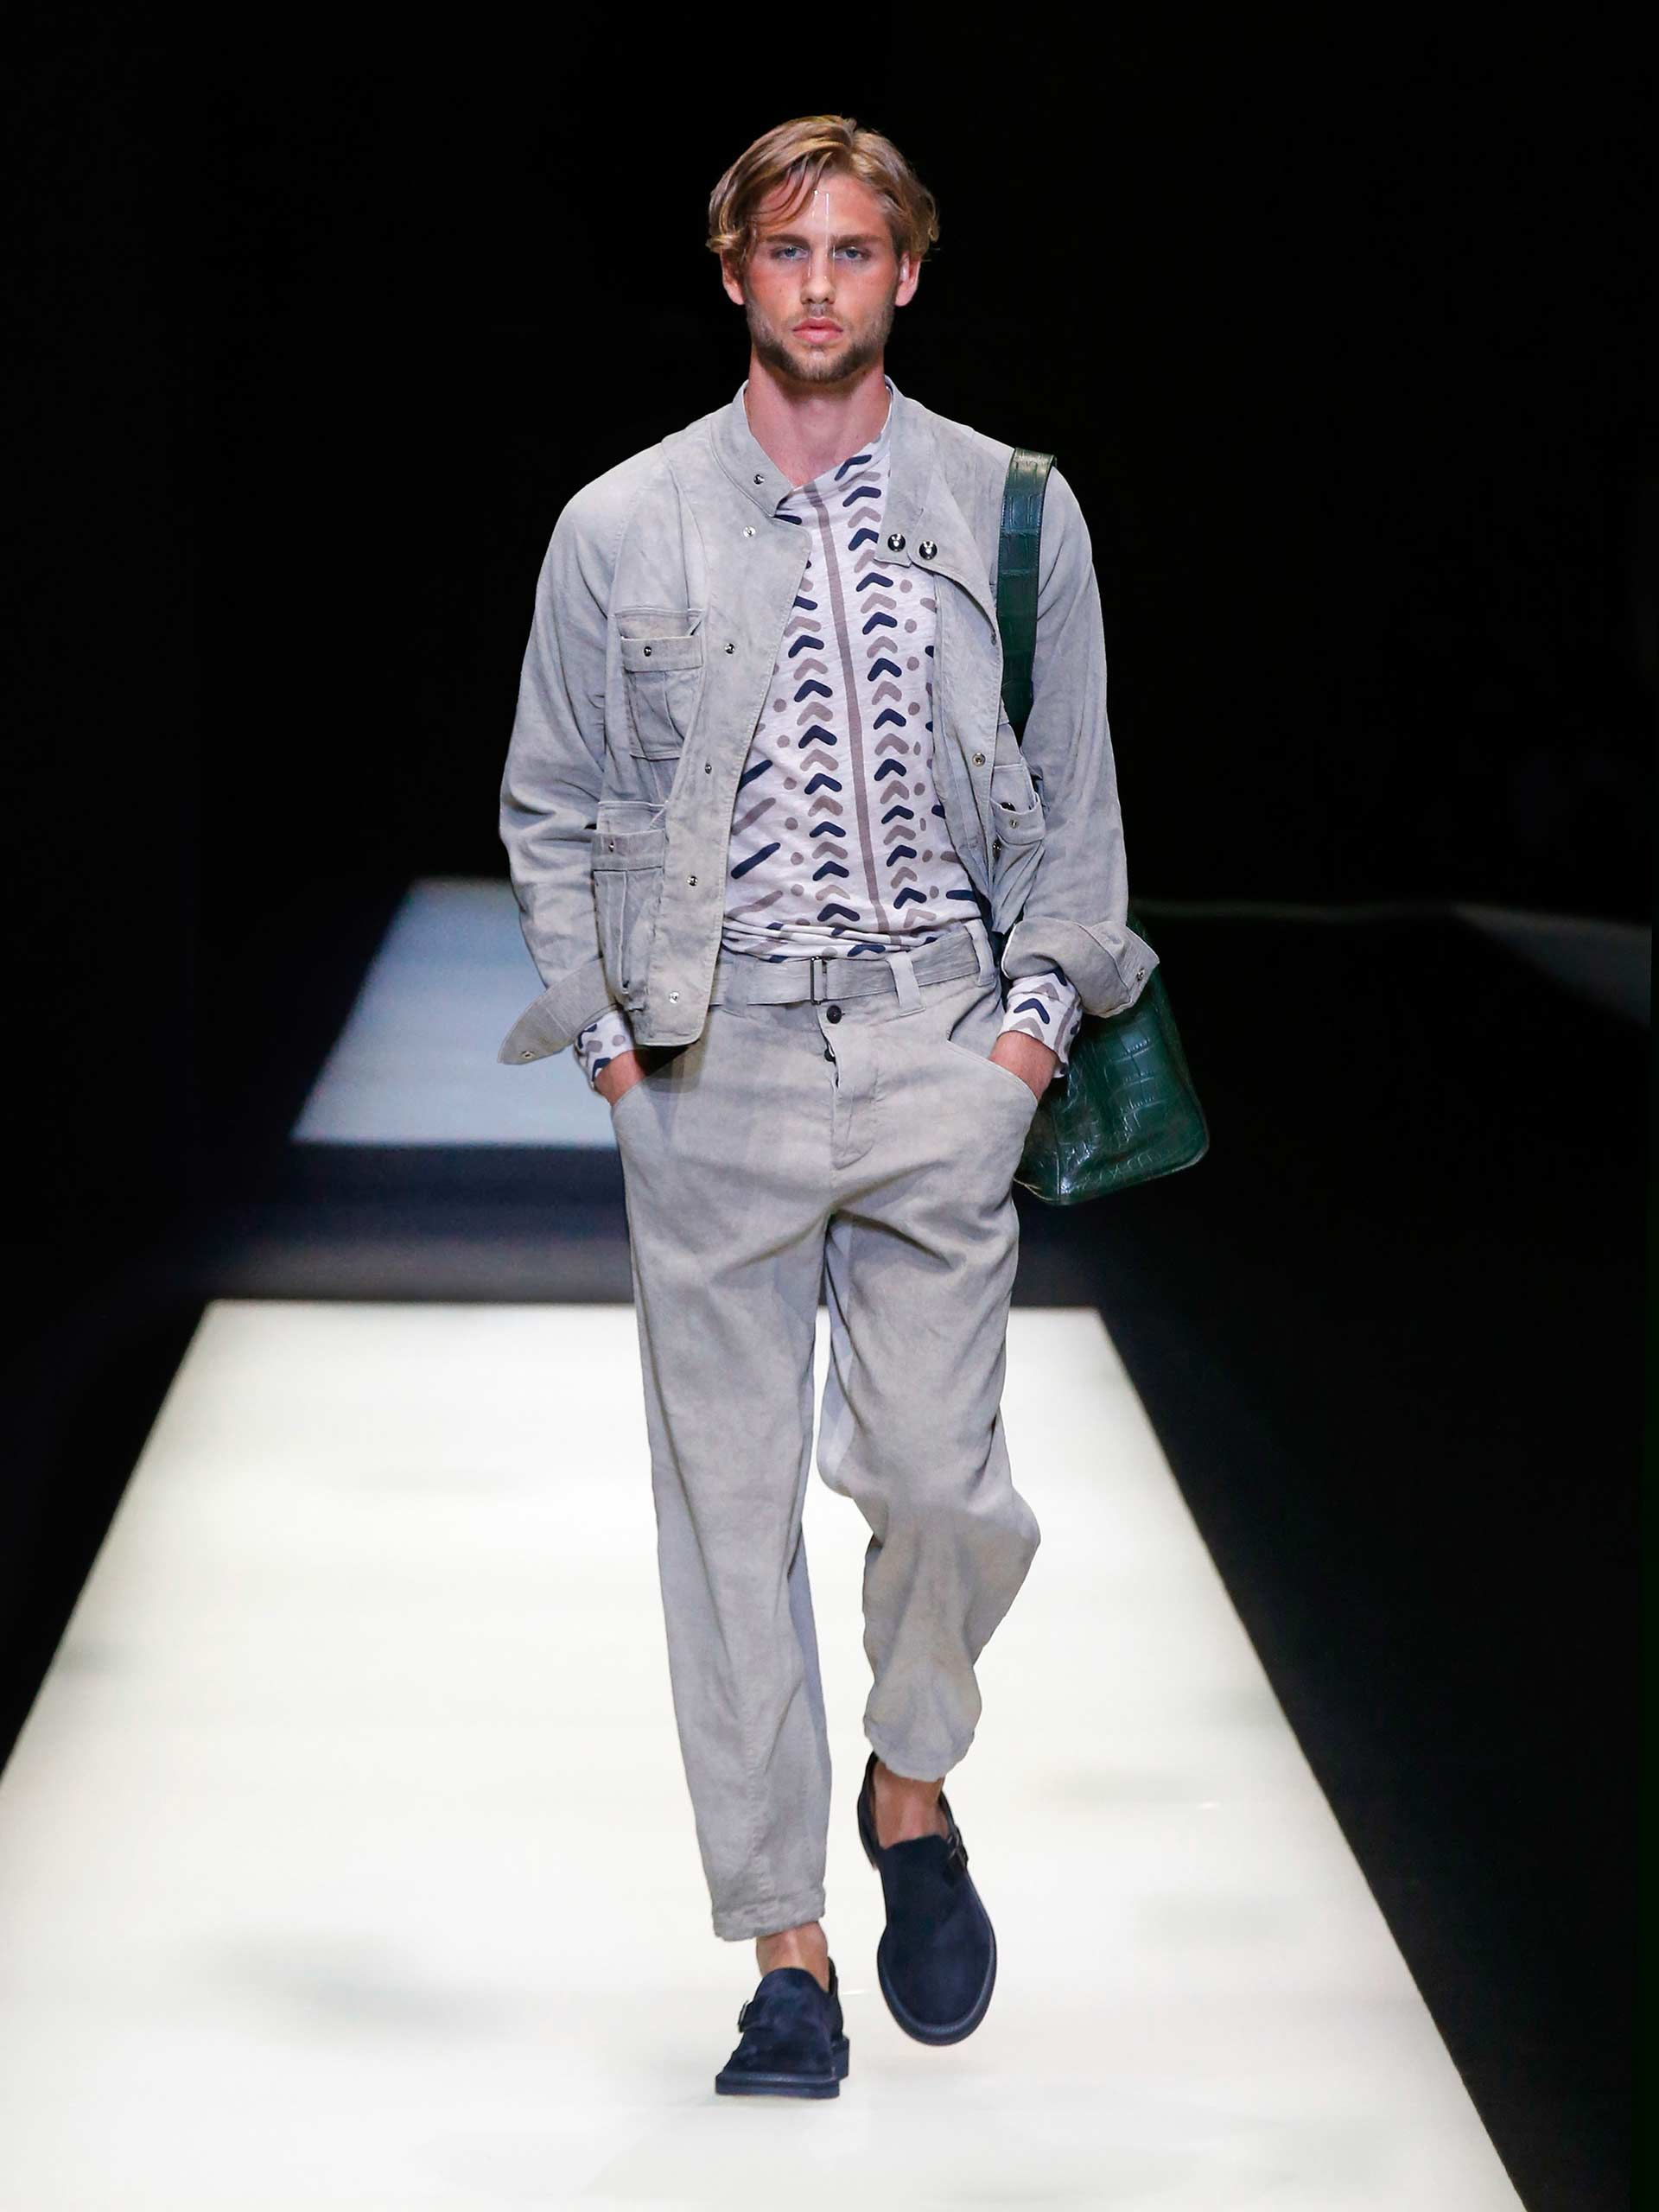 Giorgio armani men collection Got style fashion show